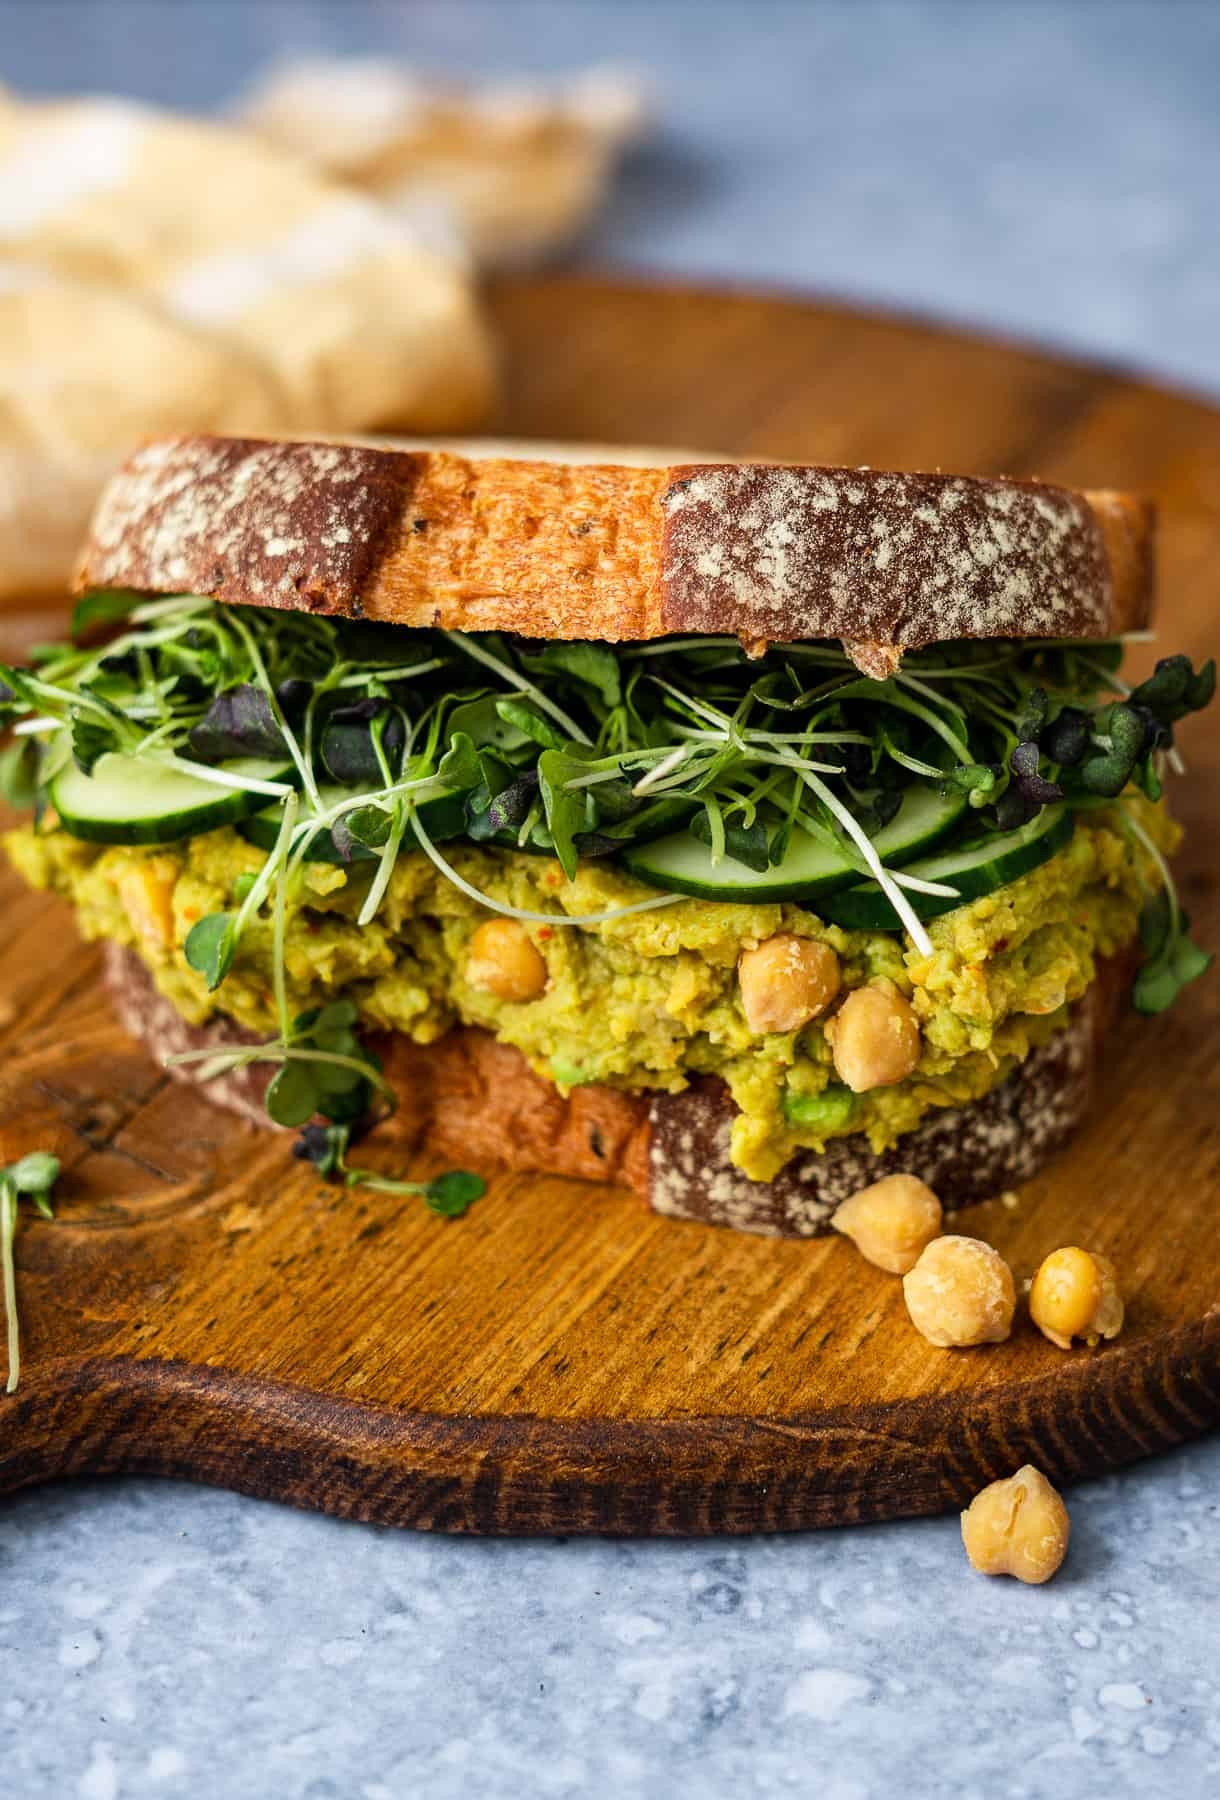 Smashed Chickpea and Avocado Sandwich Close up on a wooden board with chickpeas pieces